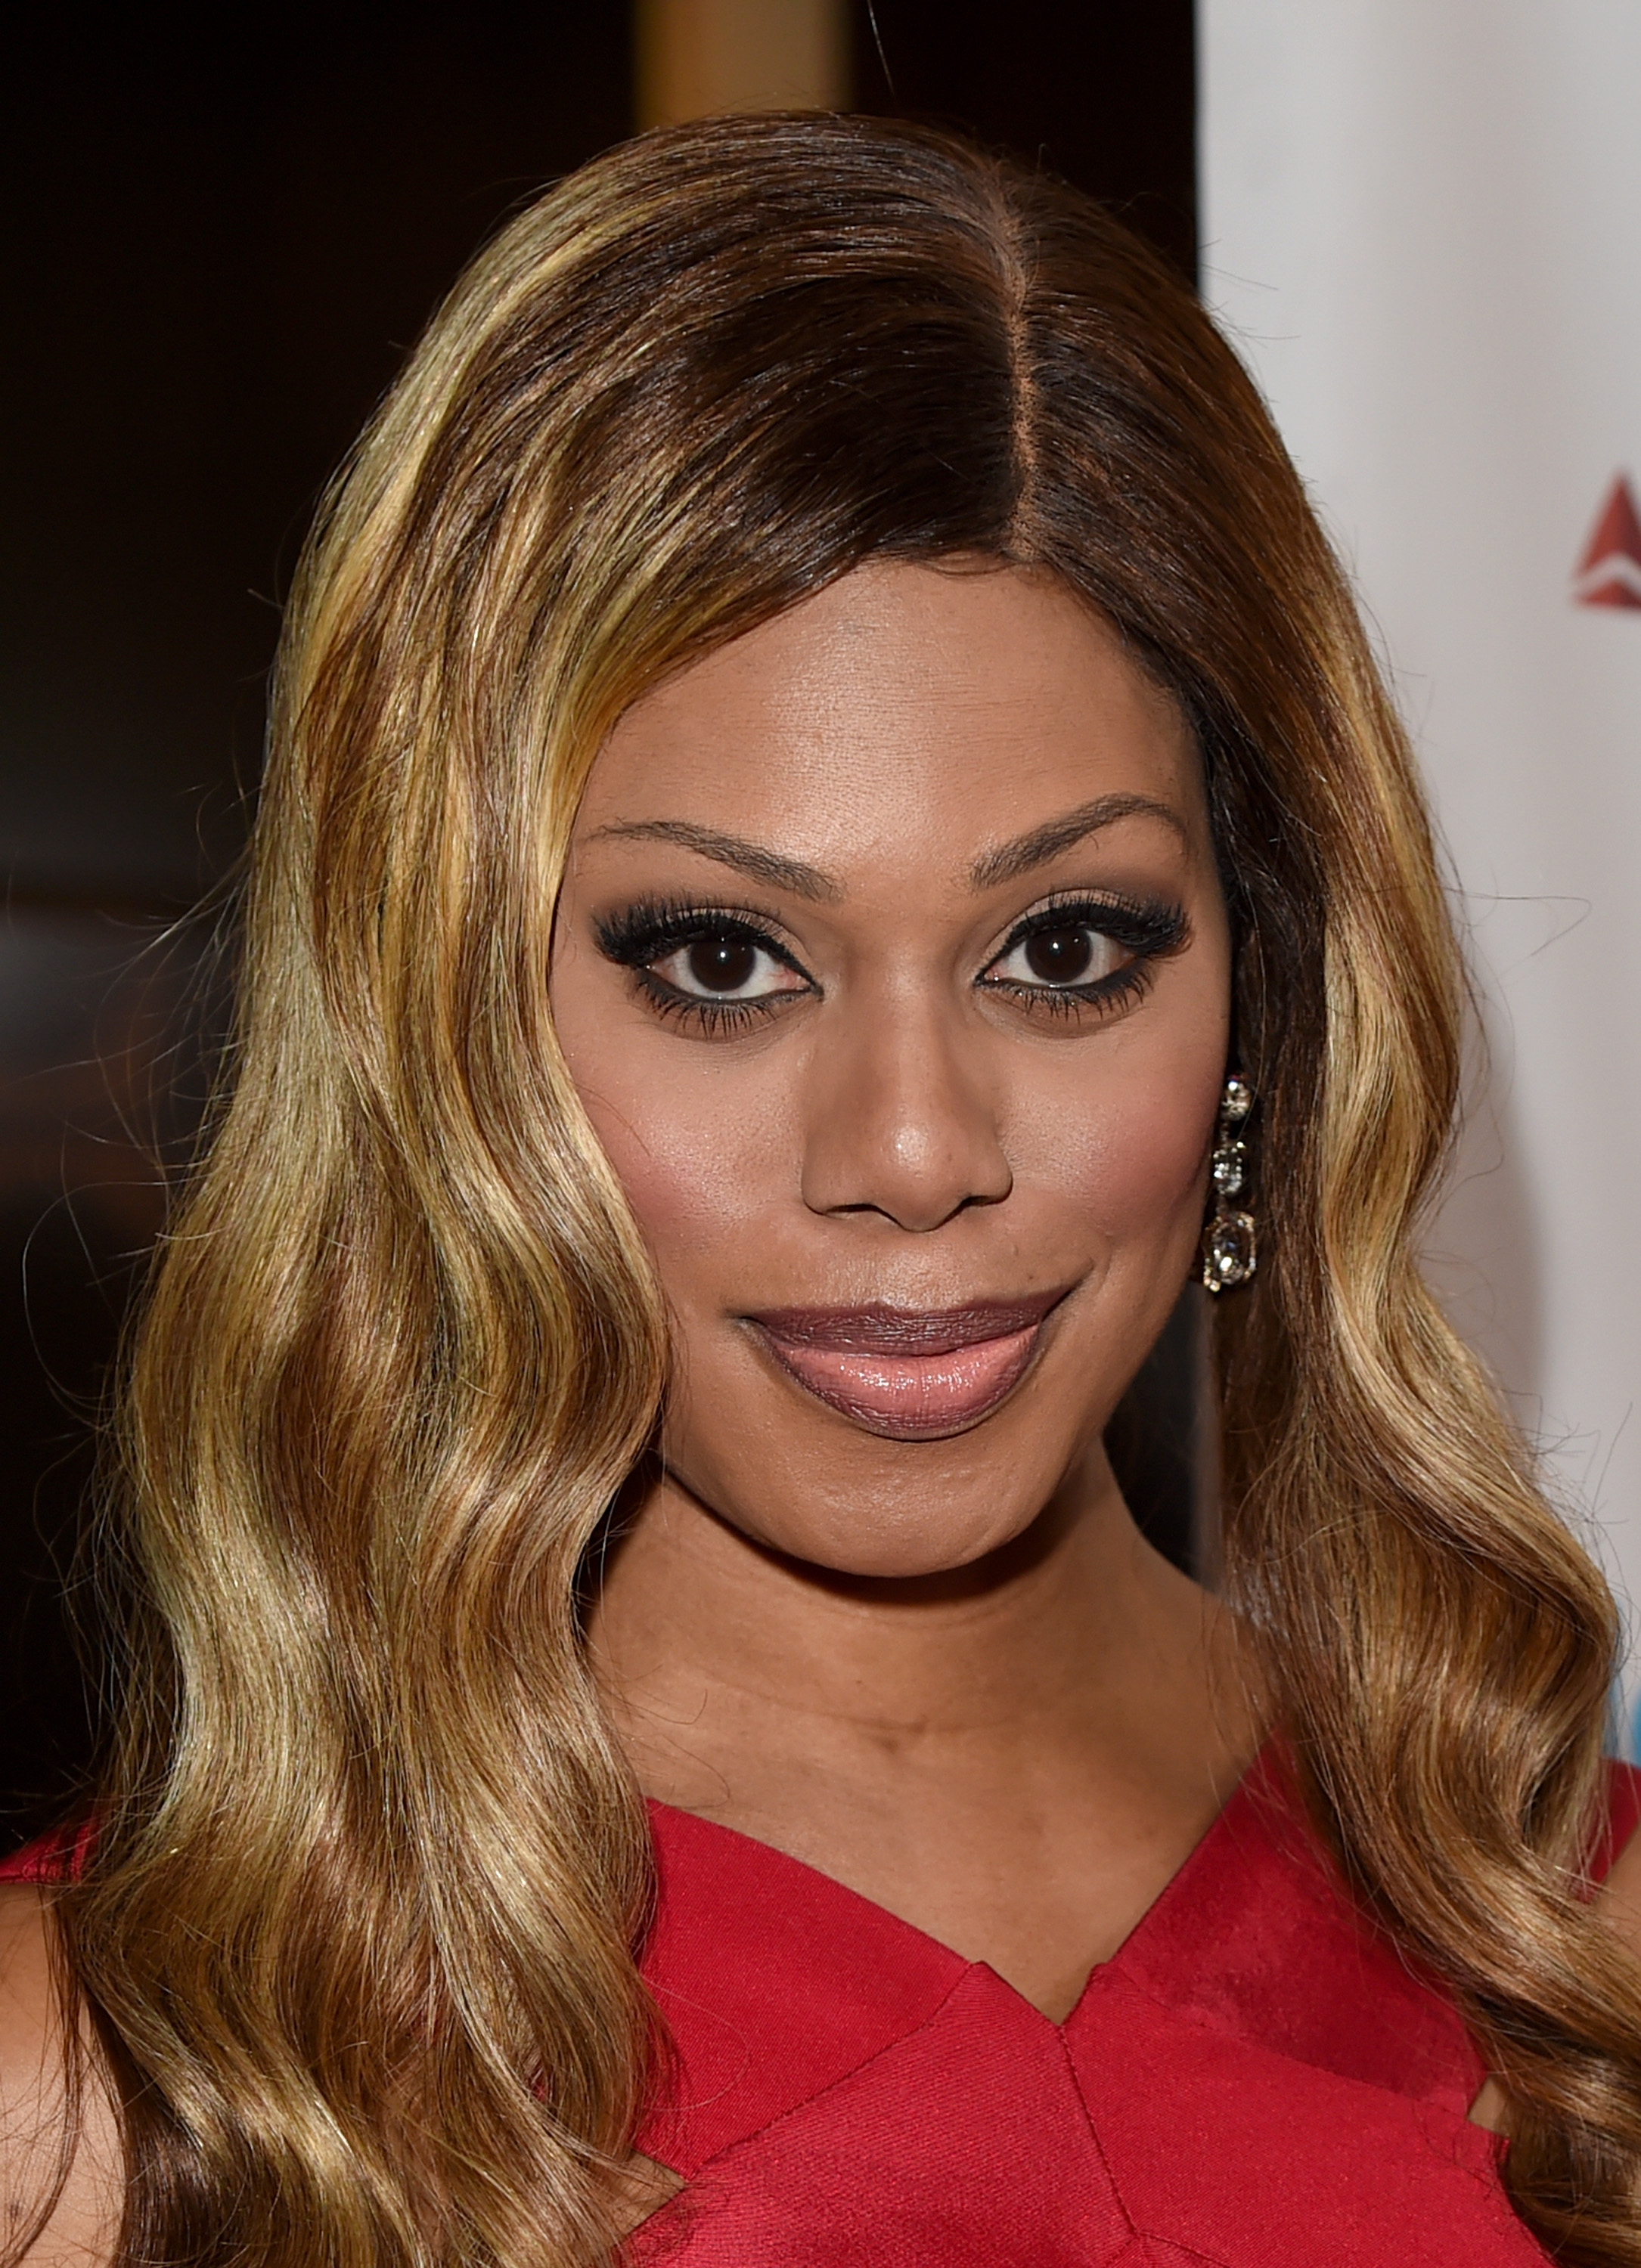 Laverne Cox has used her growing celebrity as a star of the critically acclaimed Netflix series, Orange is the New Black, to become an outspoken leader of the trans rights movement, addressing crowds of thousands at schools and other forums around the country.